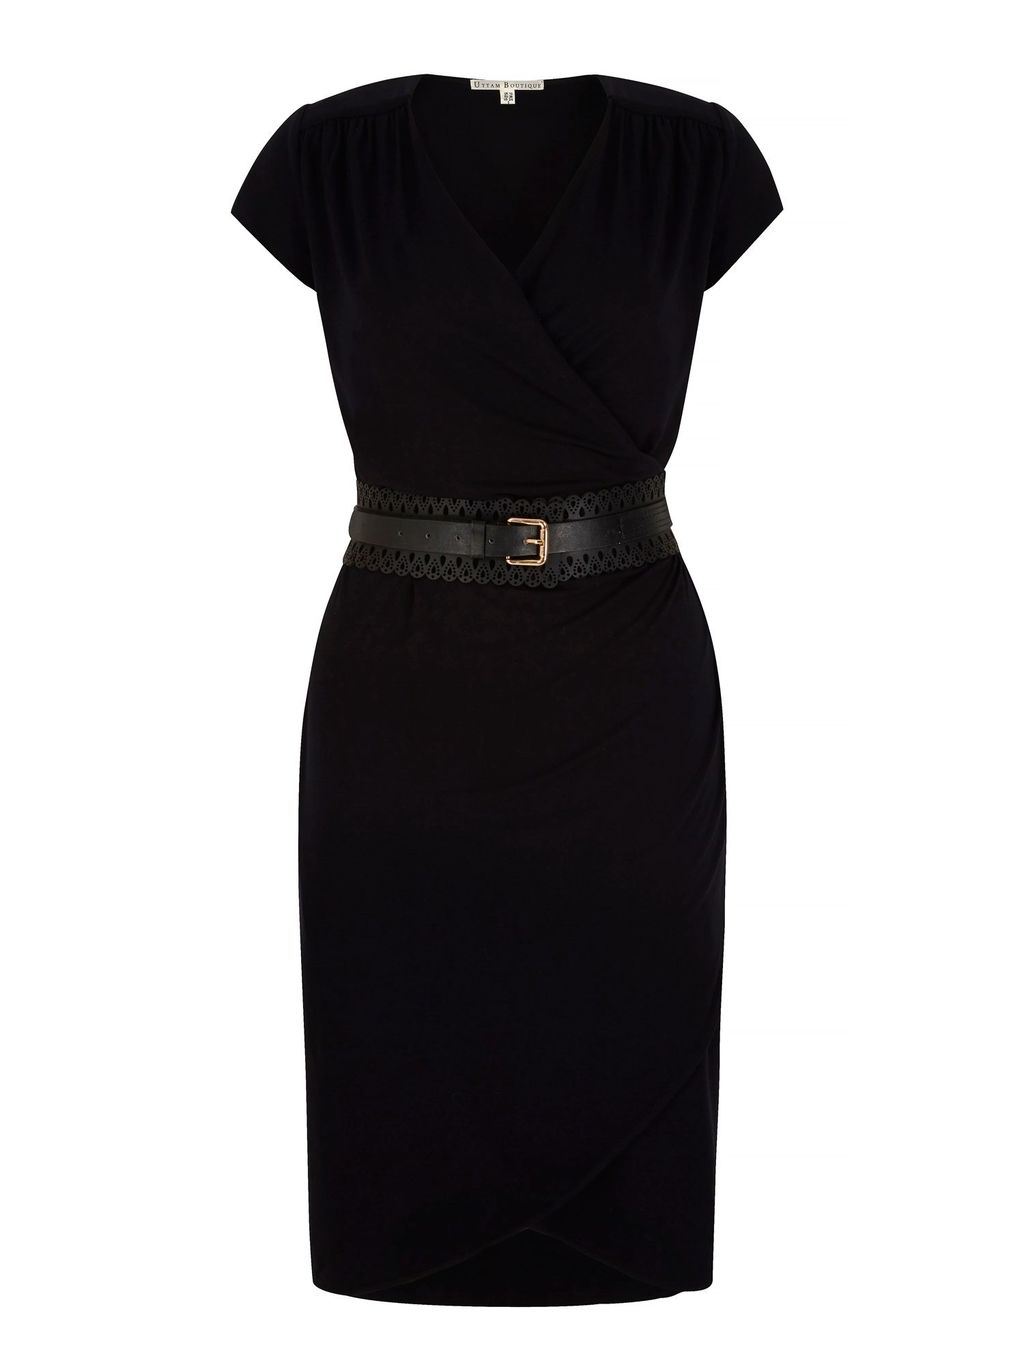 Obi Belted Wrap Dress With Belt Included, Black - style: faux wrap/wrap; neckline: v-neck; sleeve style: capped; pattern: plain; waist detail: belted waist/tie at waist/drawstring; predominant colour: black; occasions: evening; length: just above the knee; fit: body skimming; fibres: viscose/rayon - stretch; sleeve length: short sleeve; pattern type: fabric; texture group: jersey - stretchy/drapey; season: s/s 2016